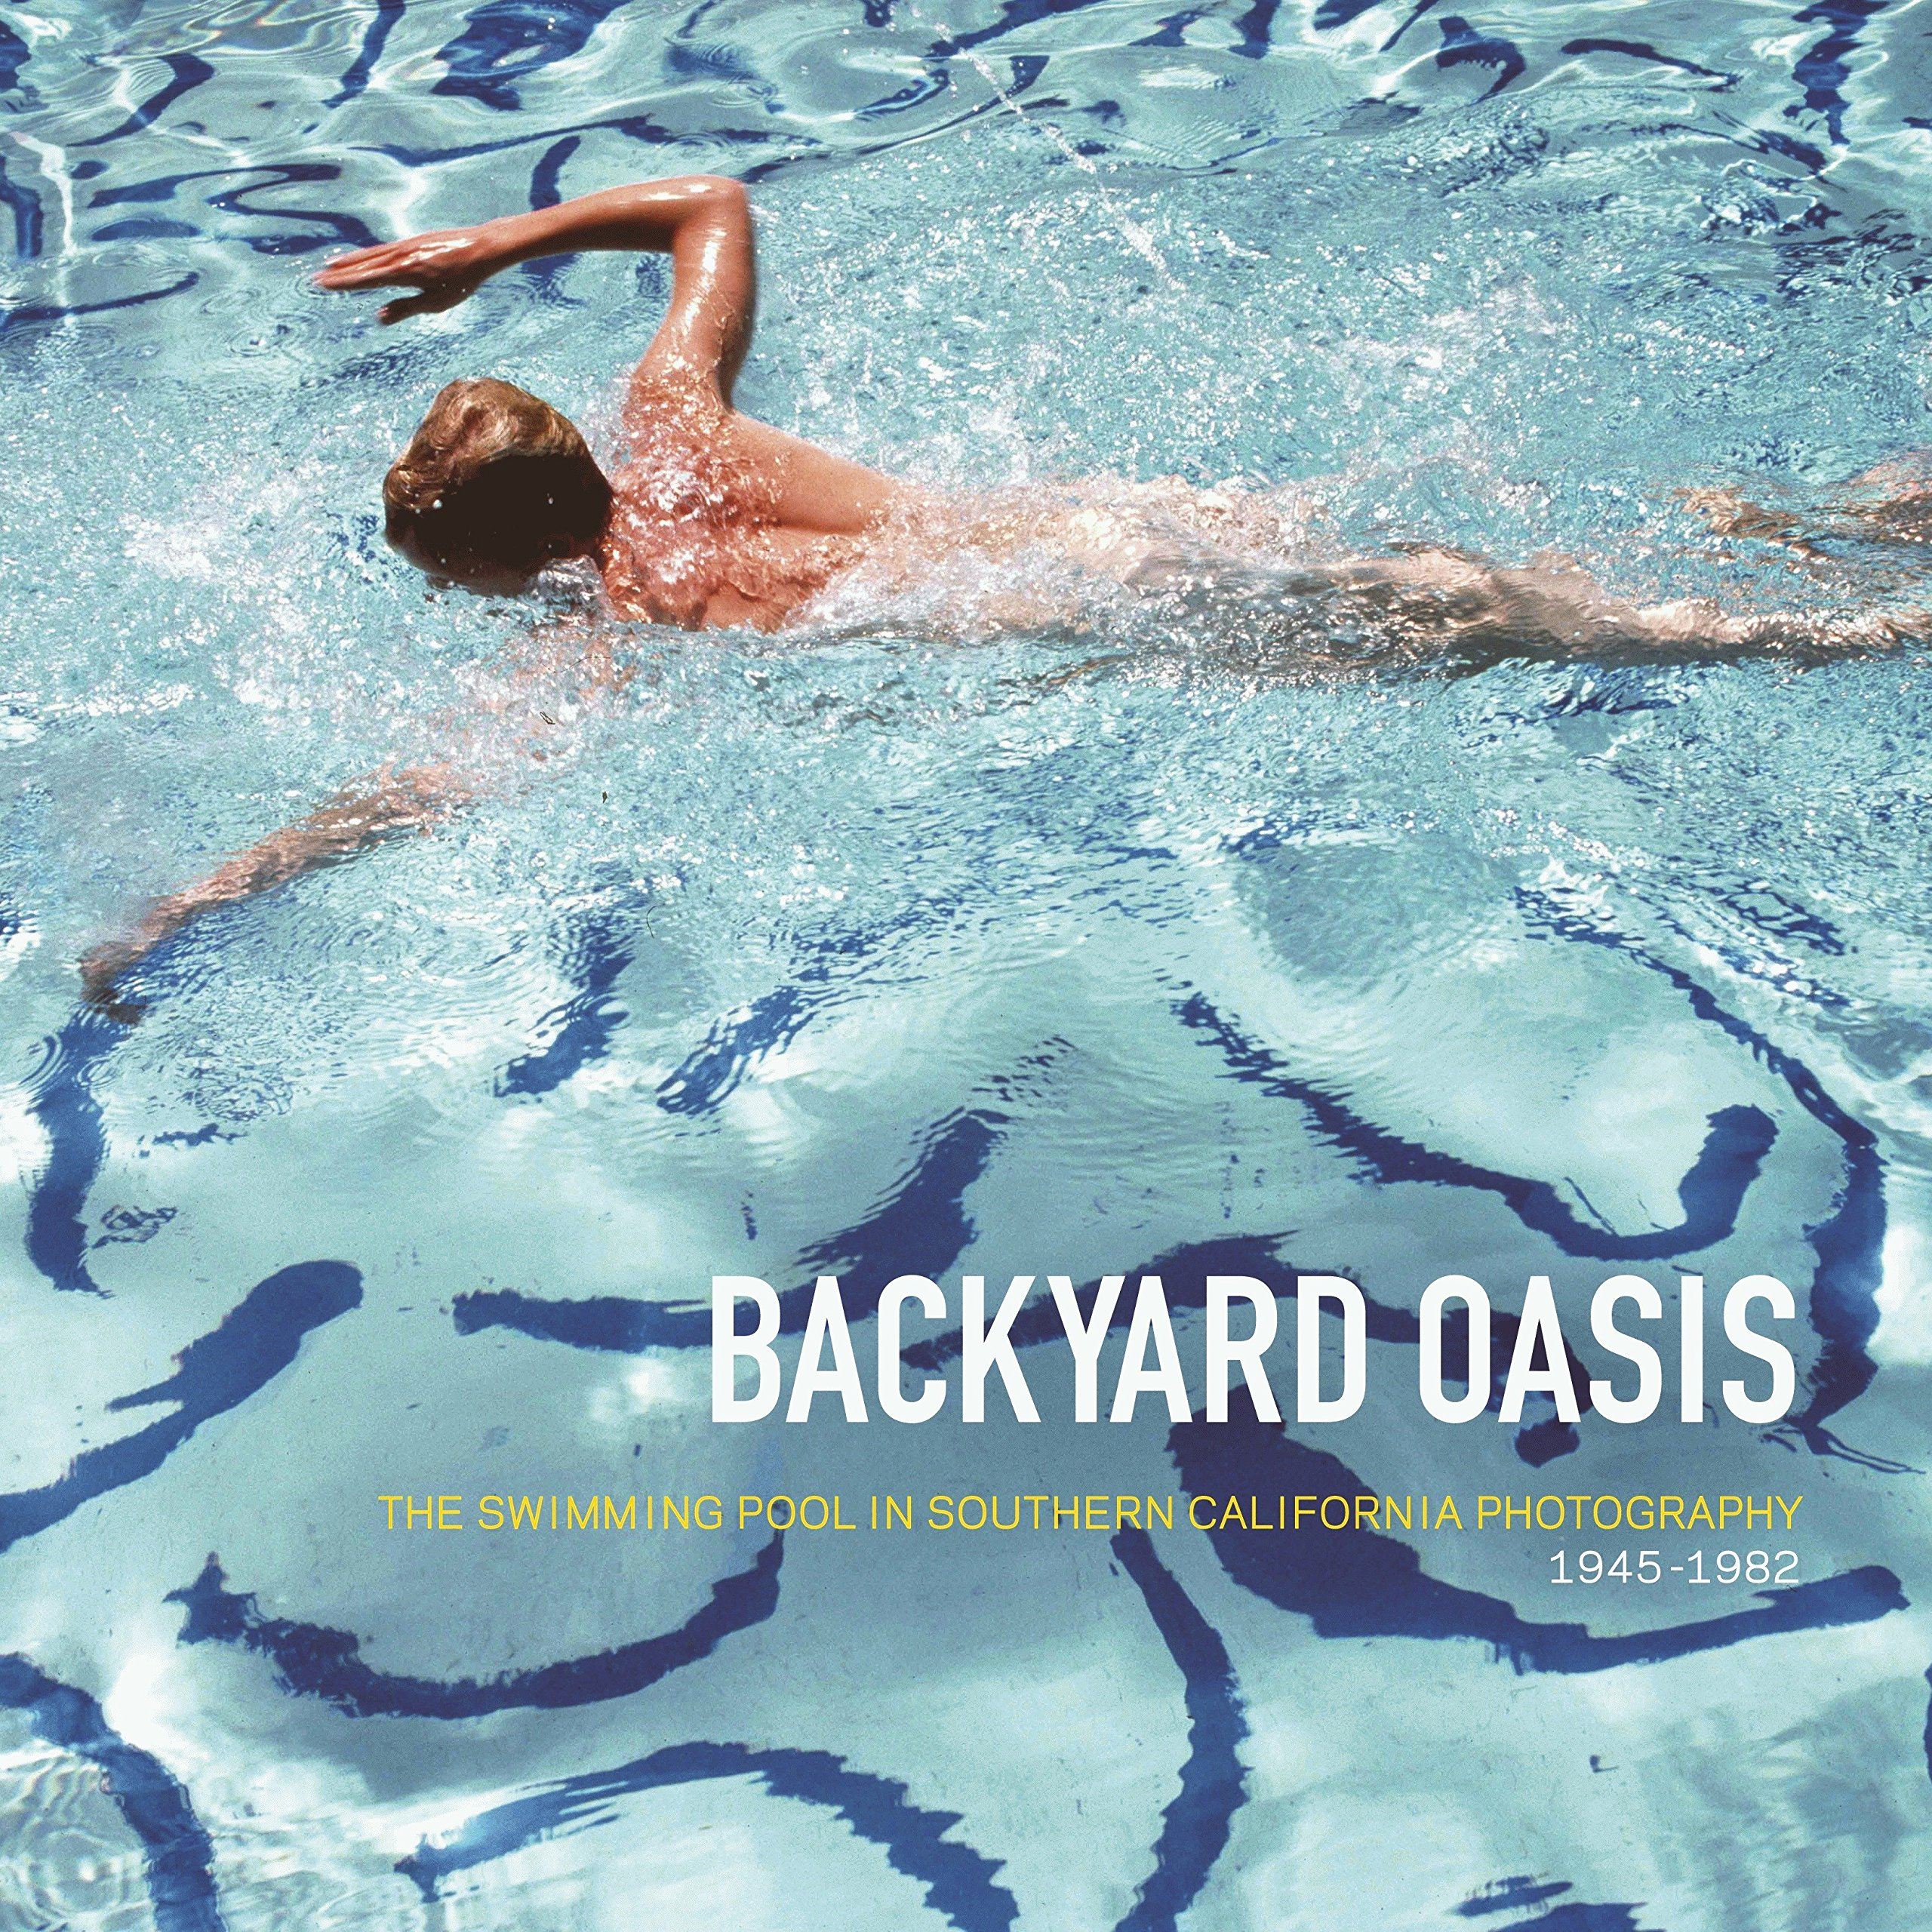 Amazon.com: Backyard Oasis: The Swimming Pool in Southern California ...